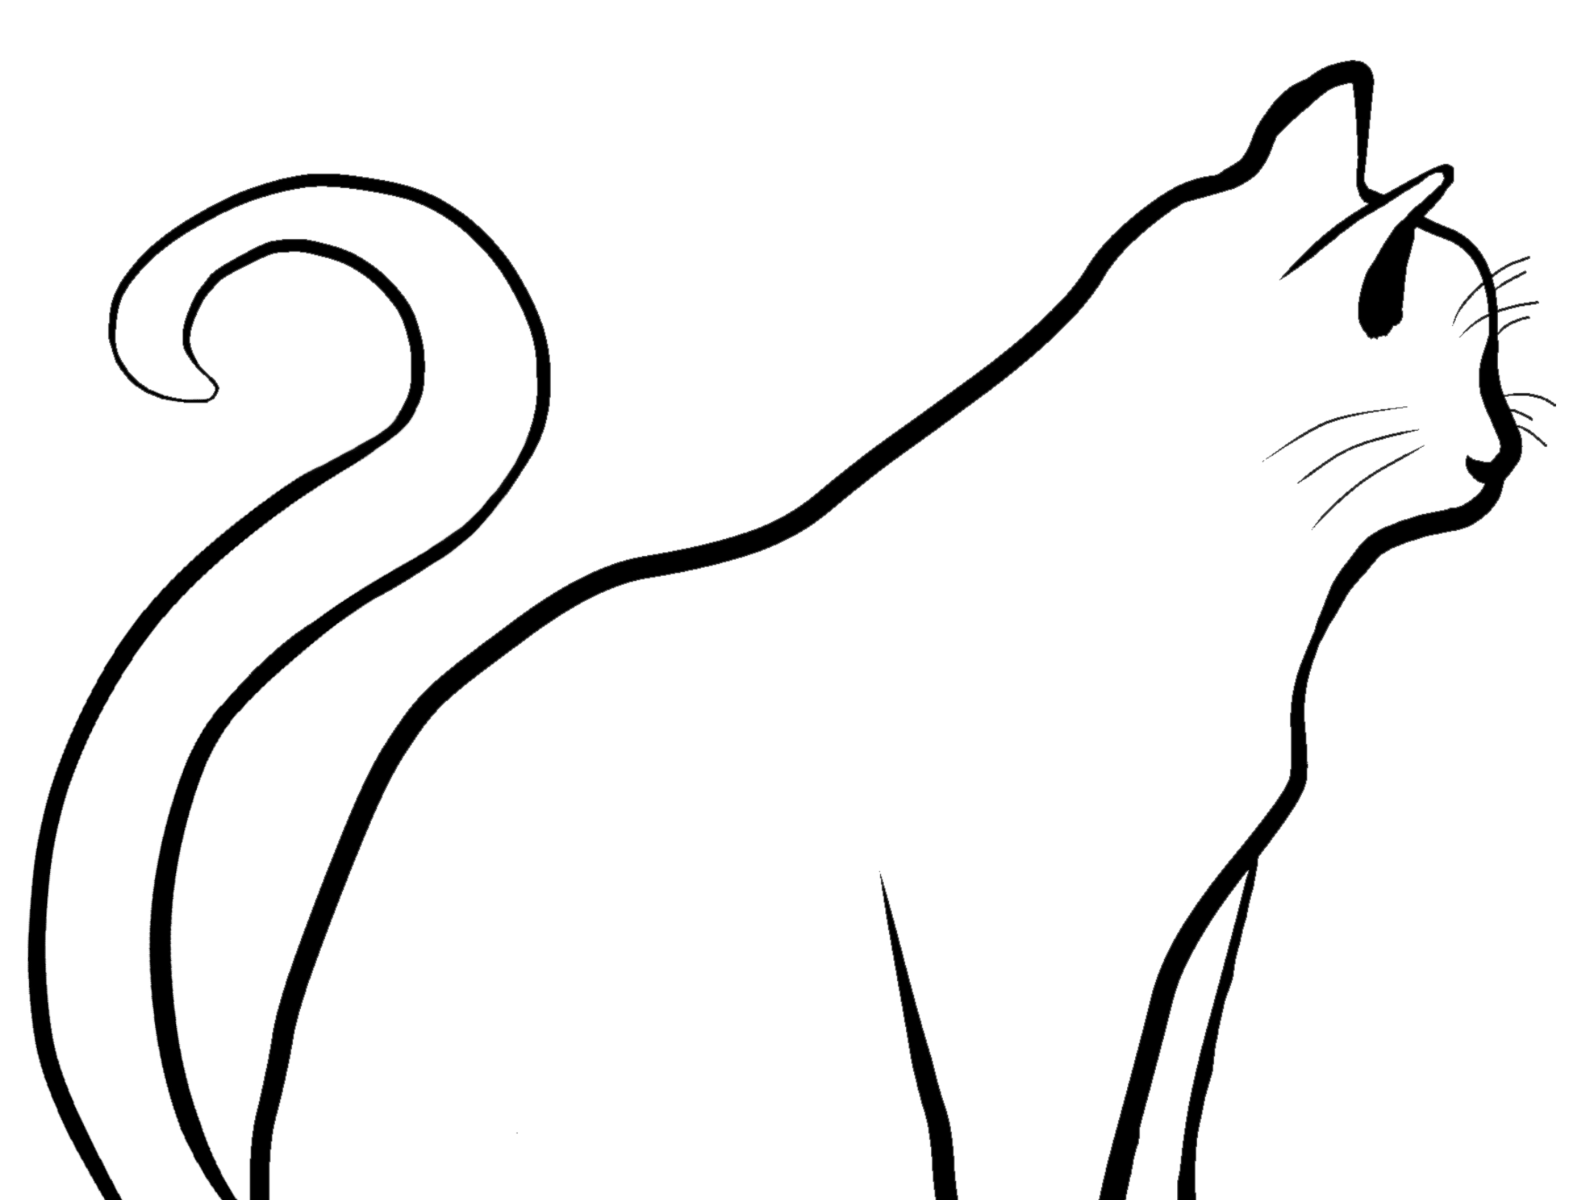 Cat Outline By Kaitlyn Dunsmoor On Dribbble